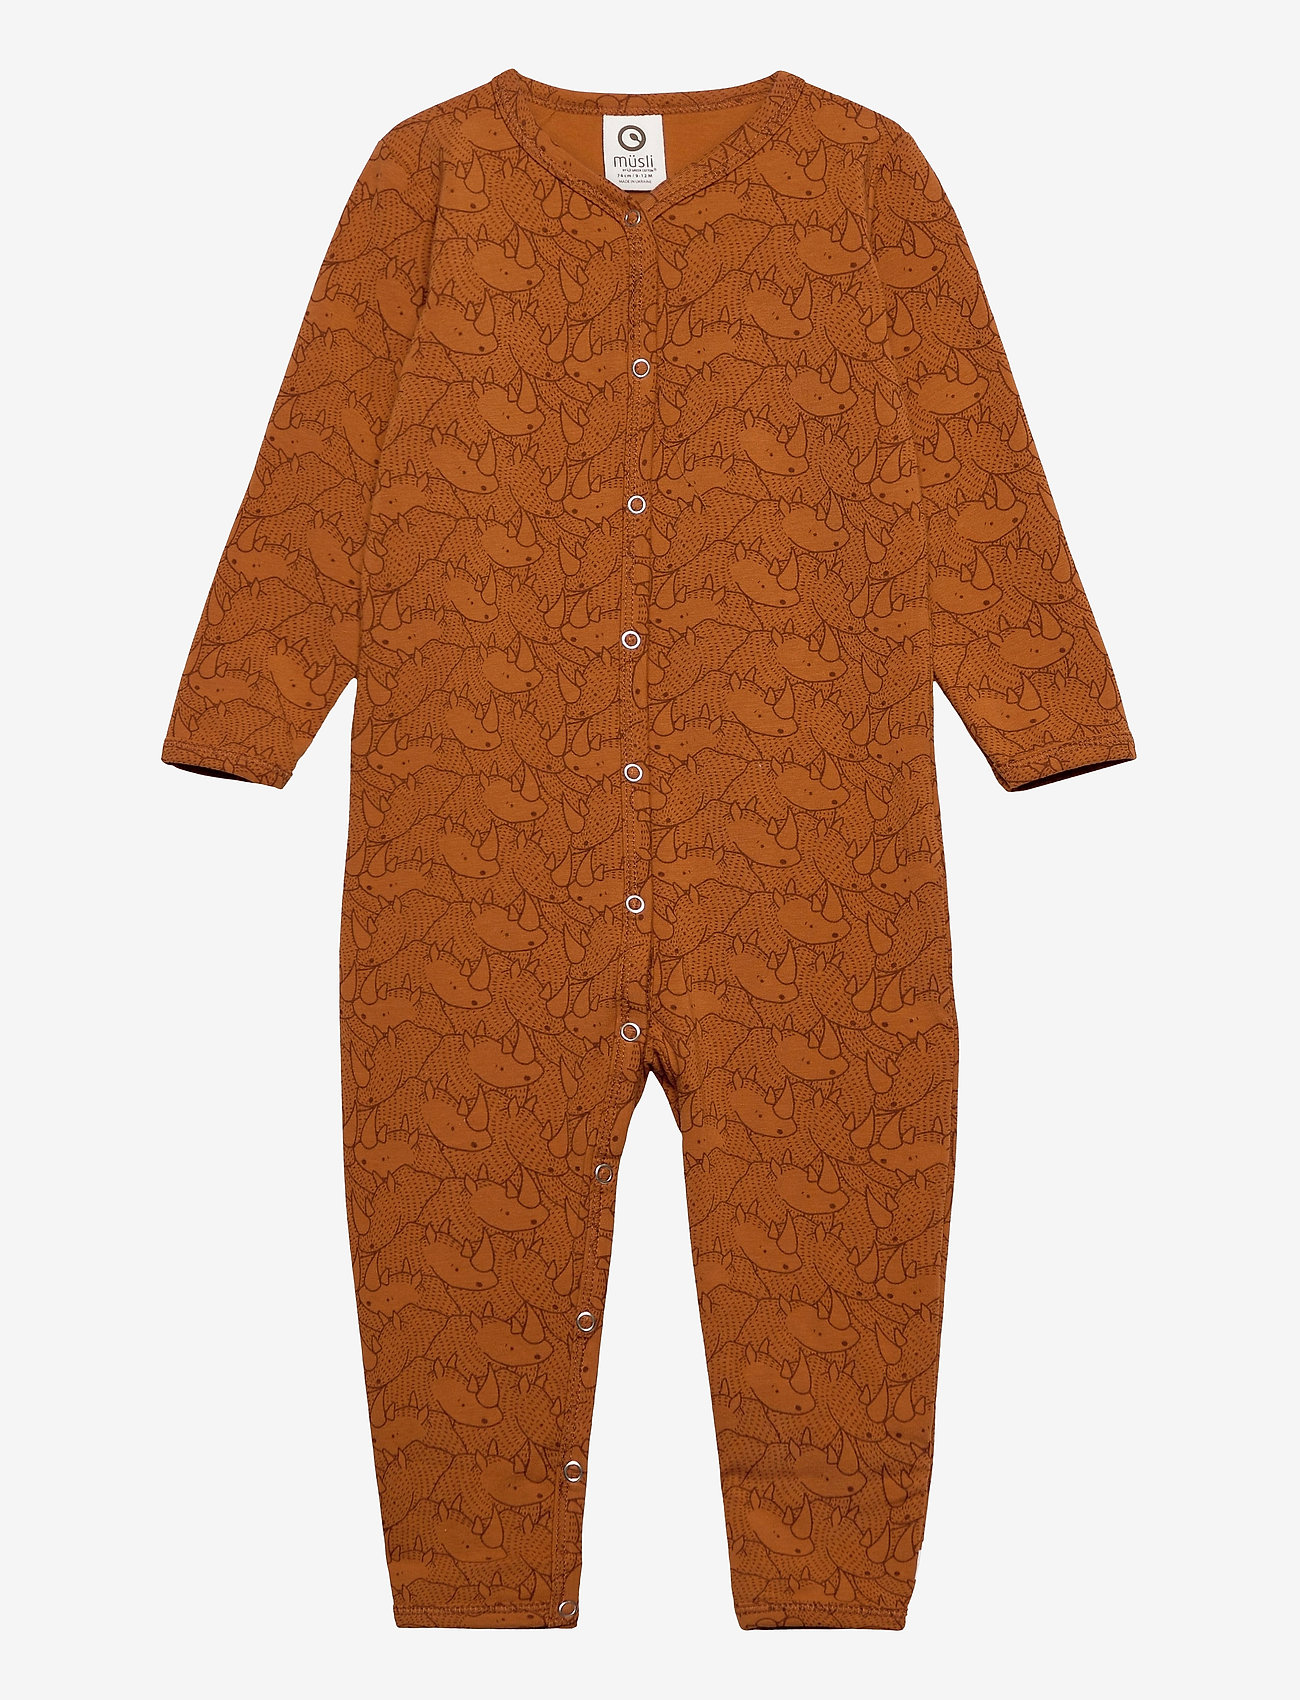 Müsli by Green Cotton - Rhino bodysuit - langärmelig - ocher - 0